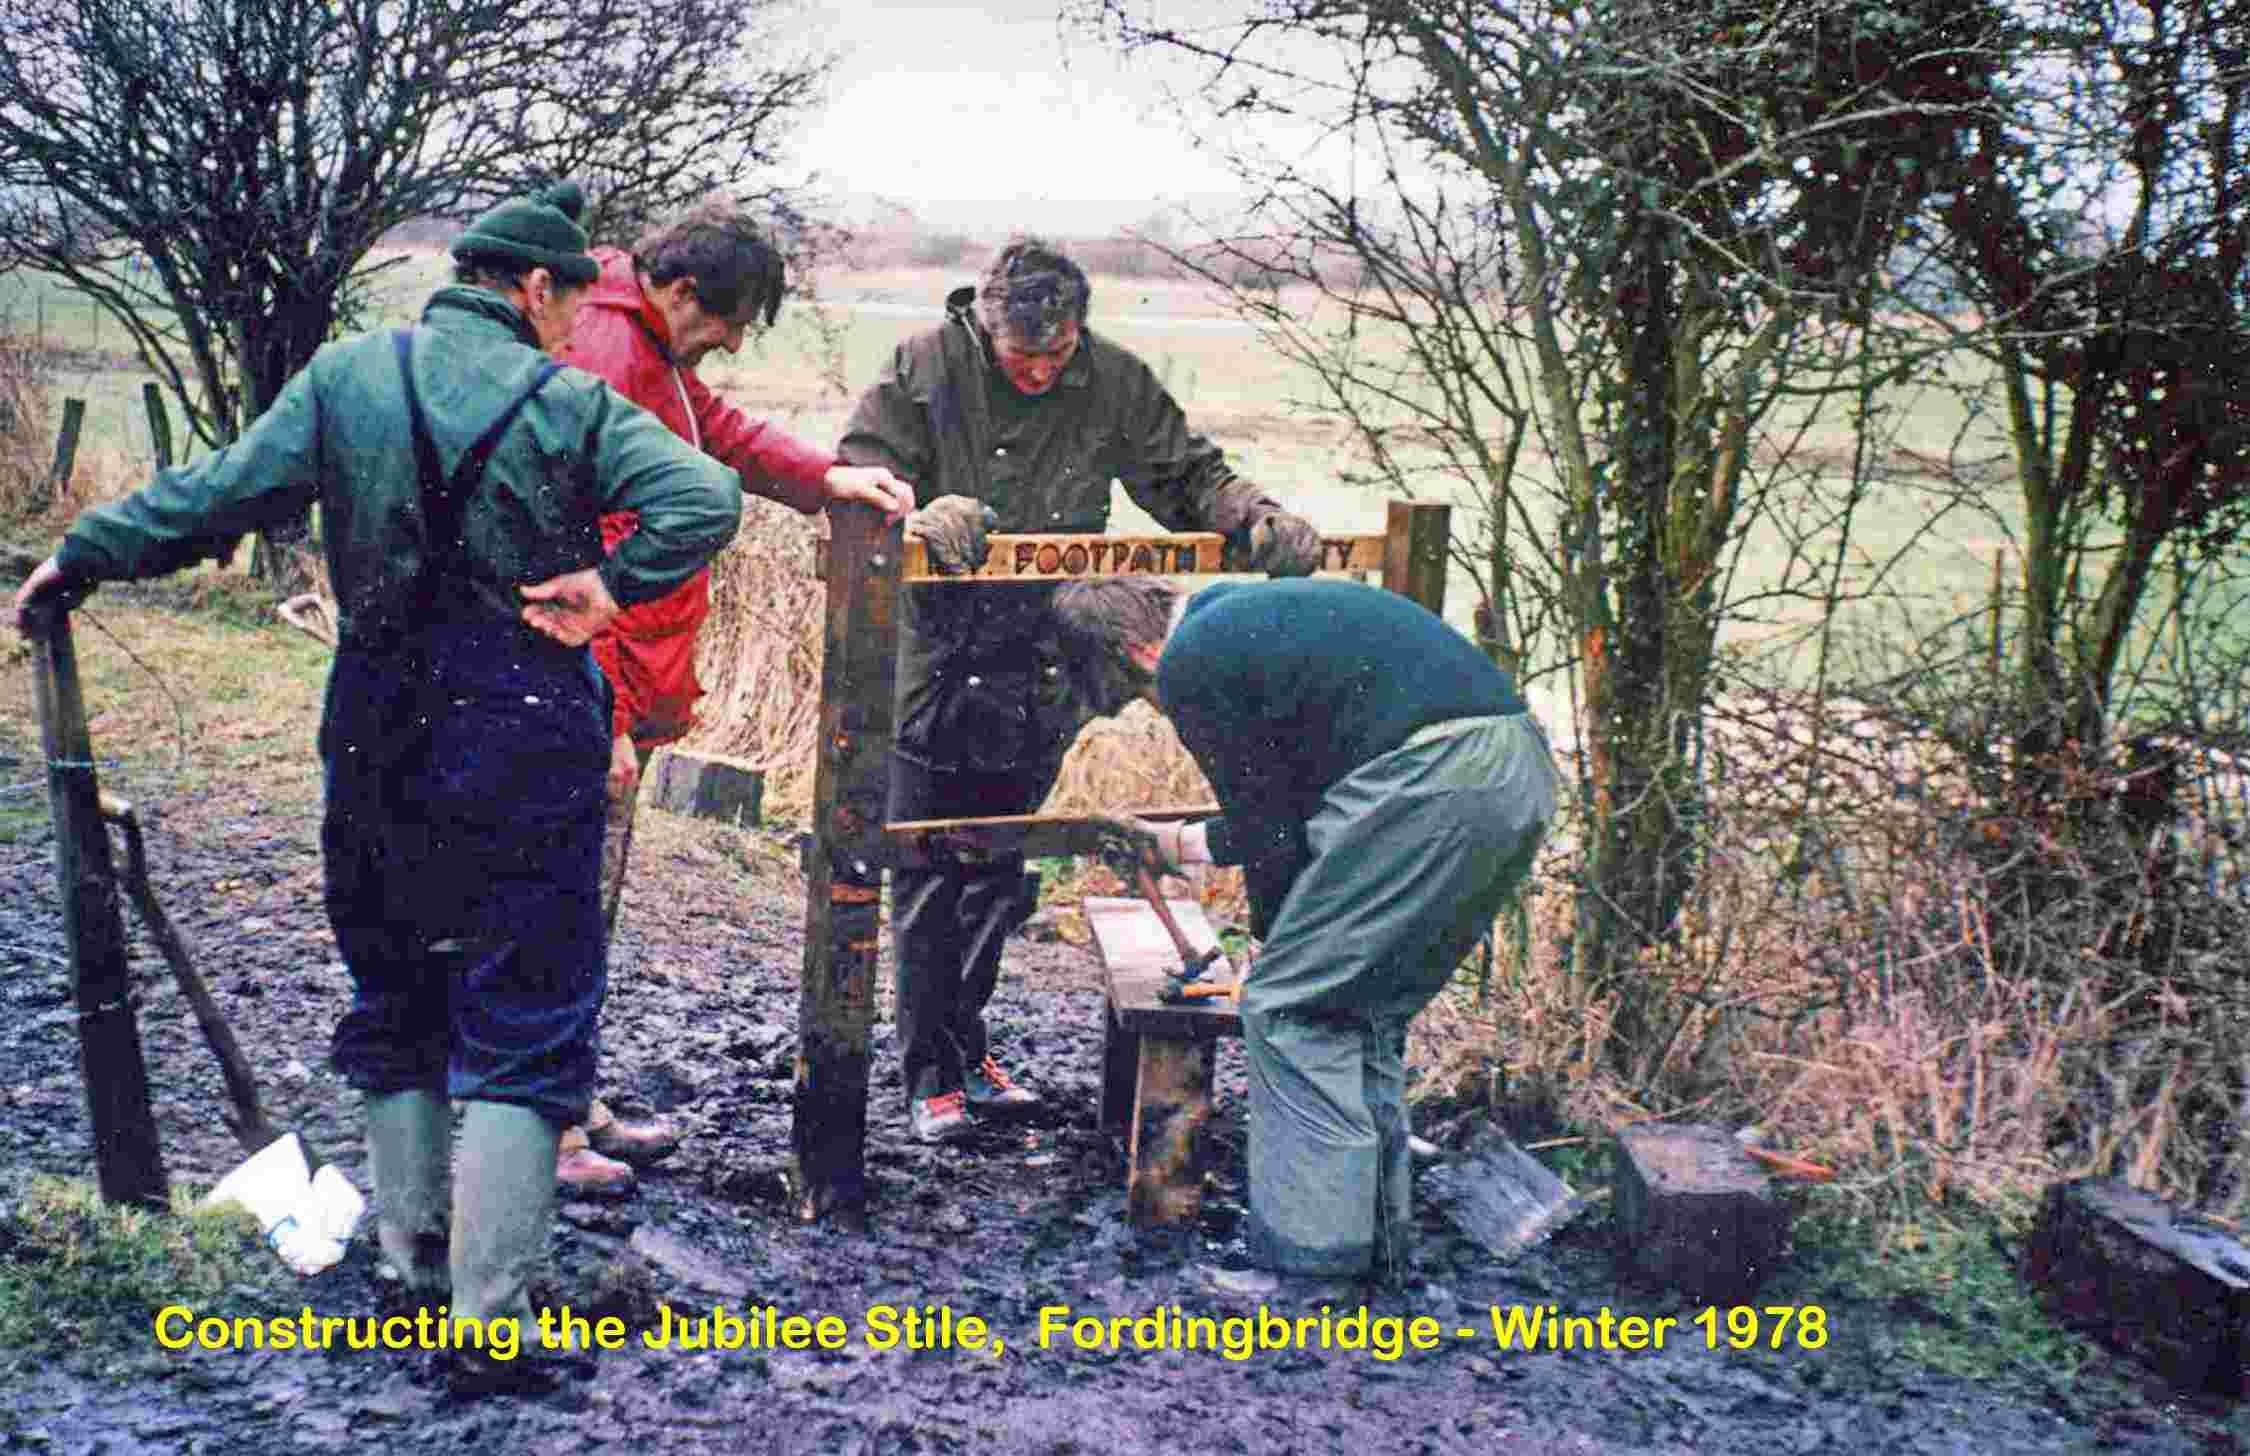 Constructing the Jubilee stile in Fordingbridge in 1978. Lots more pictures in the Journal